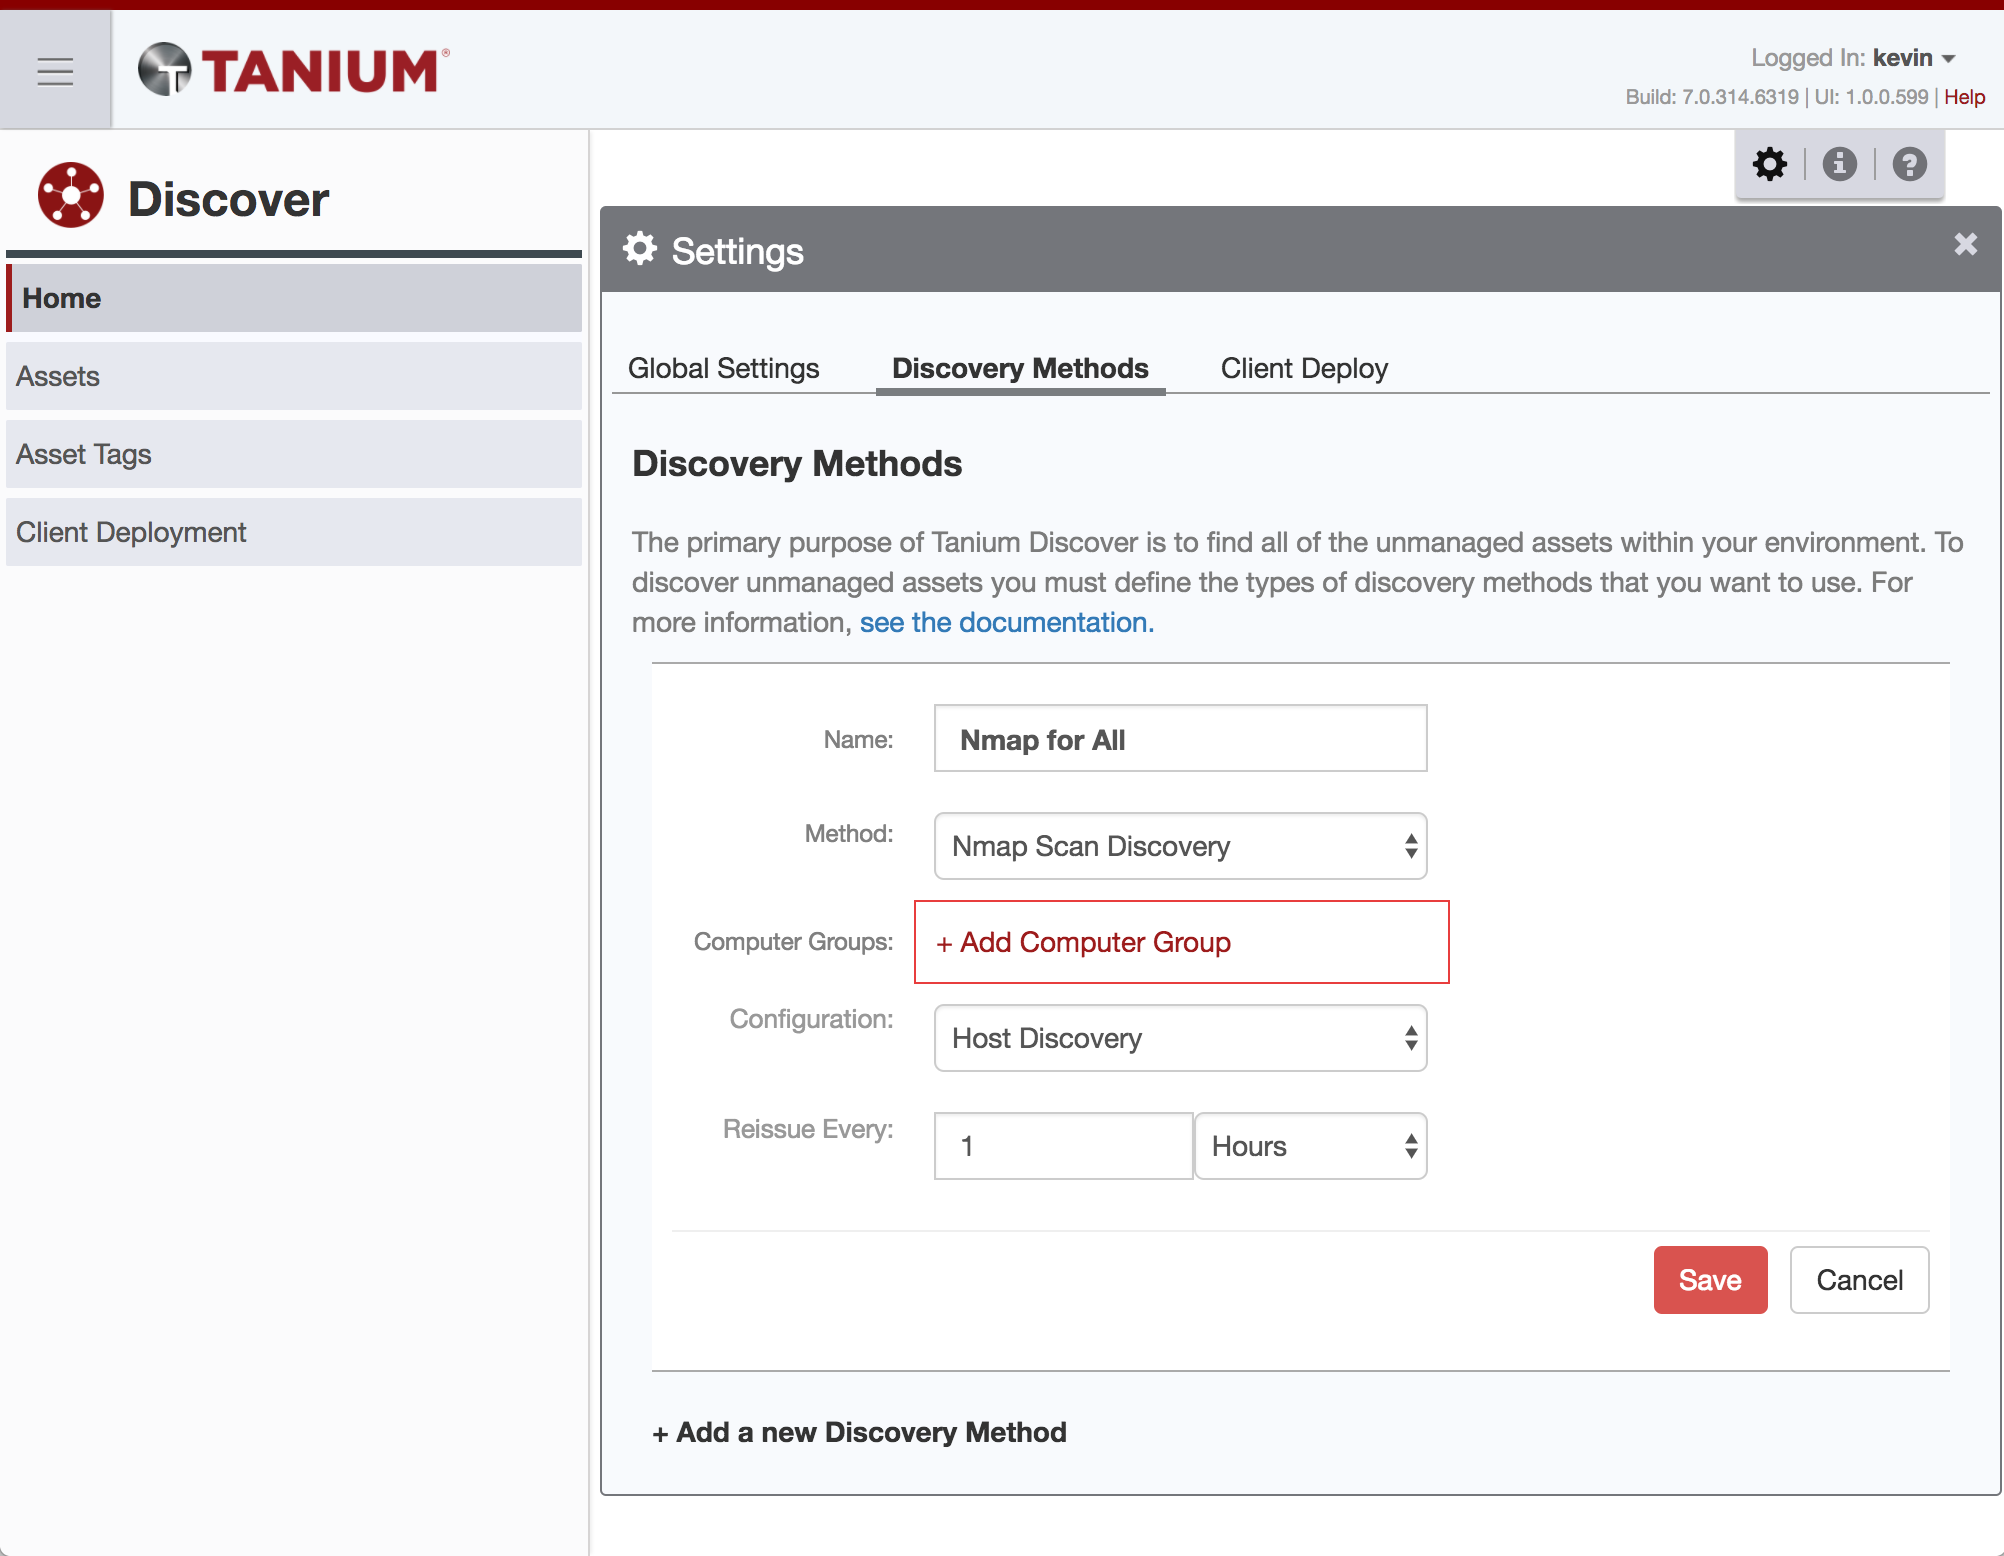 Nmap Scan Discovery Method in Tanium Discover